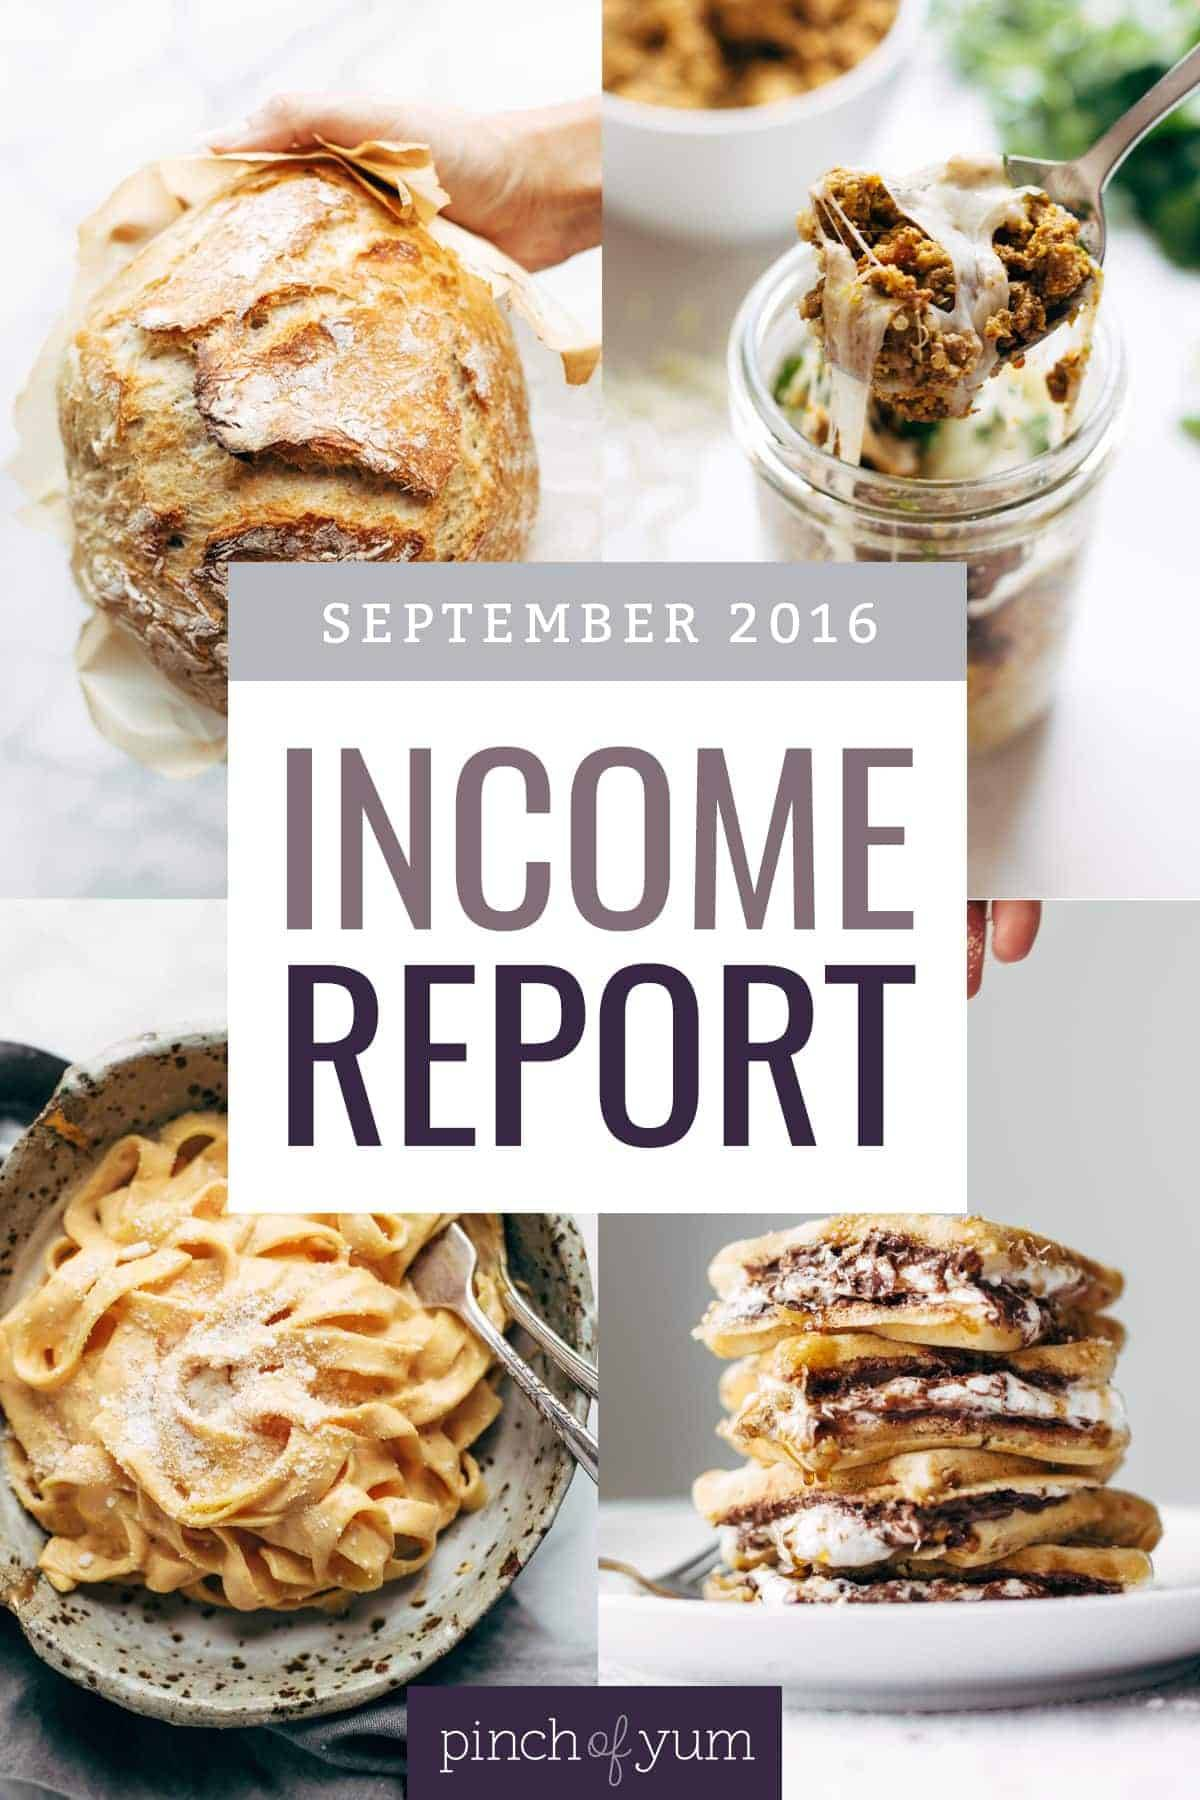 September Income Report - Updating an Old Blog Post collage of four images.